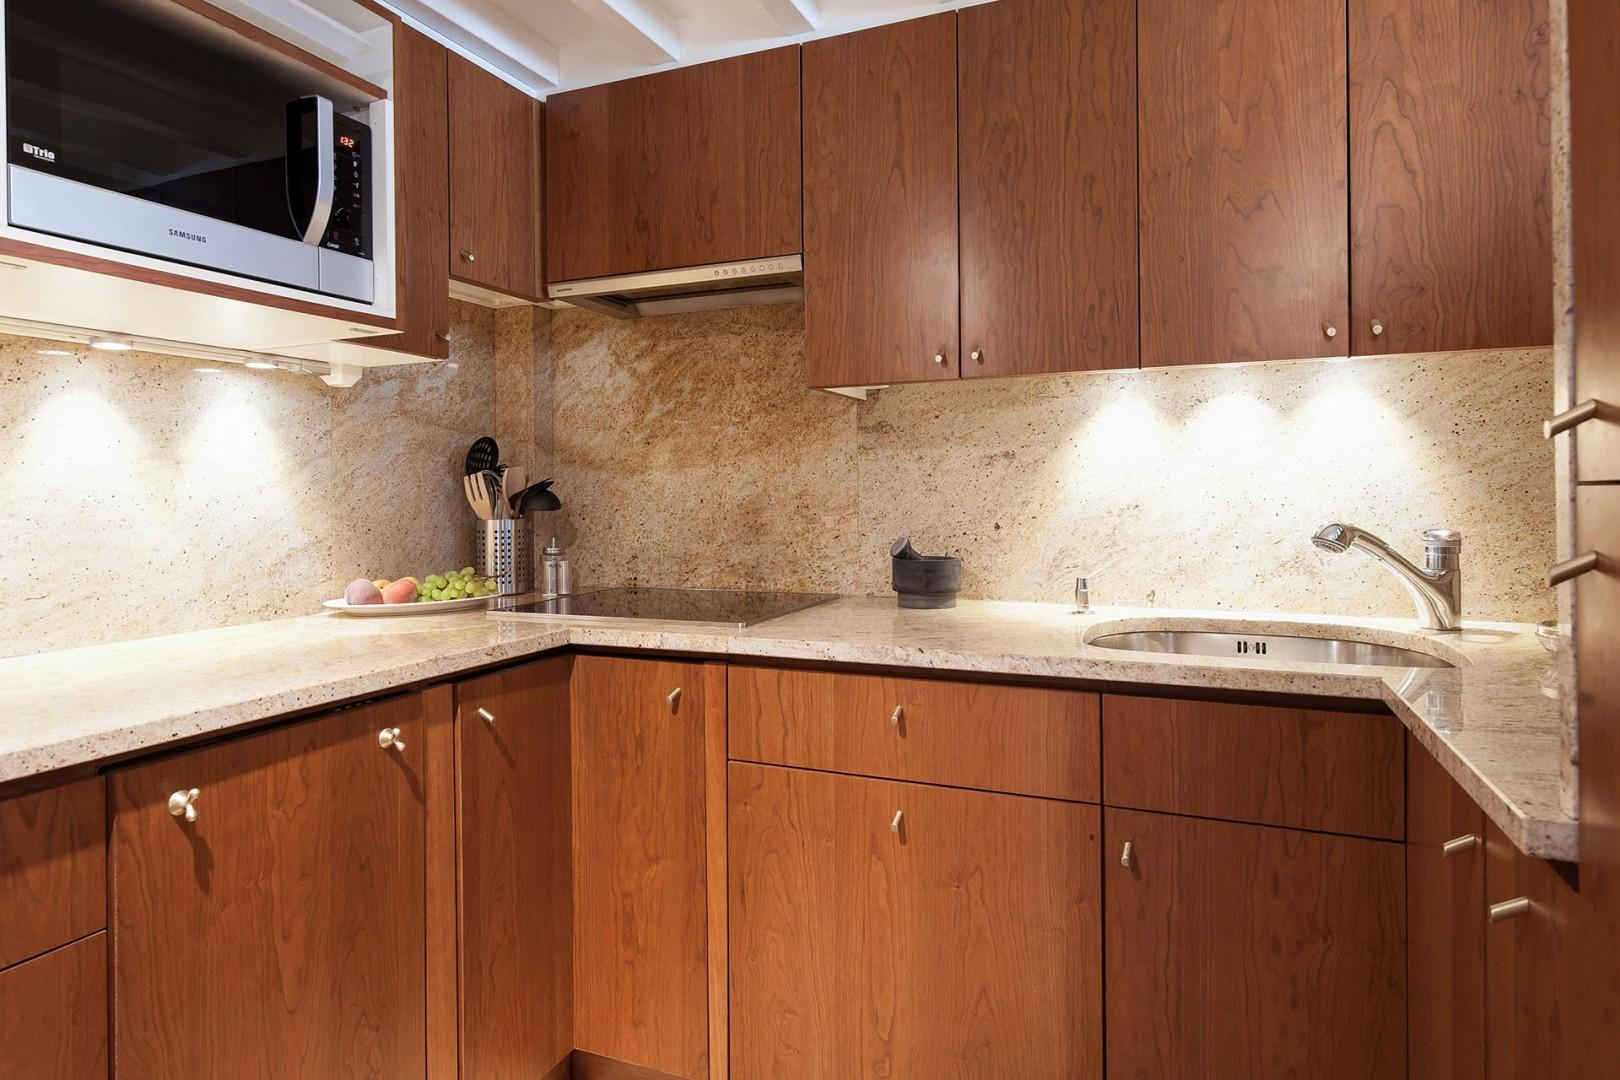 The fully-equipped kitchen is covered in marble and rich hardwood.